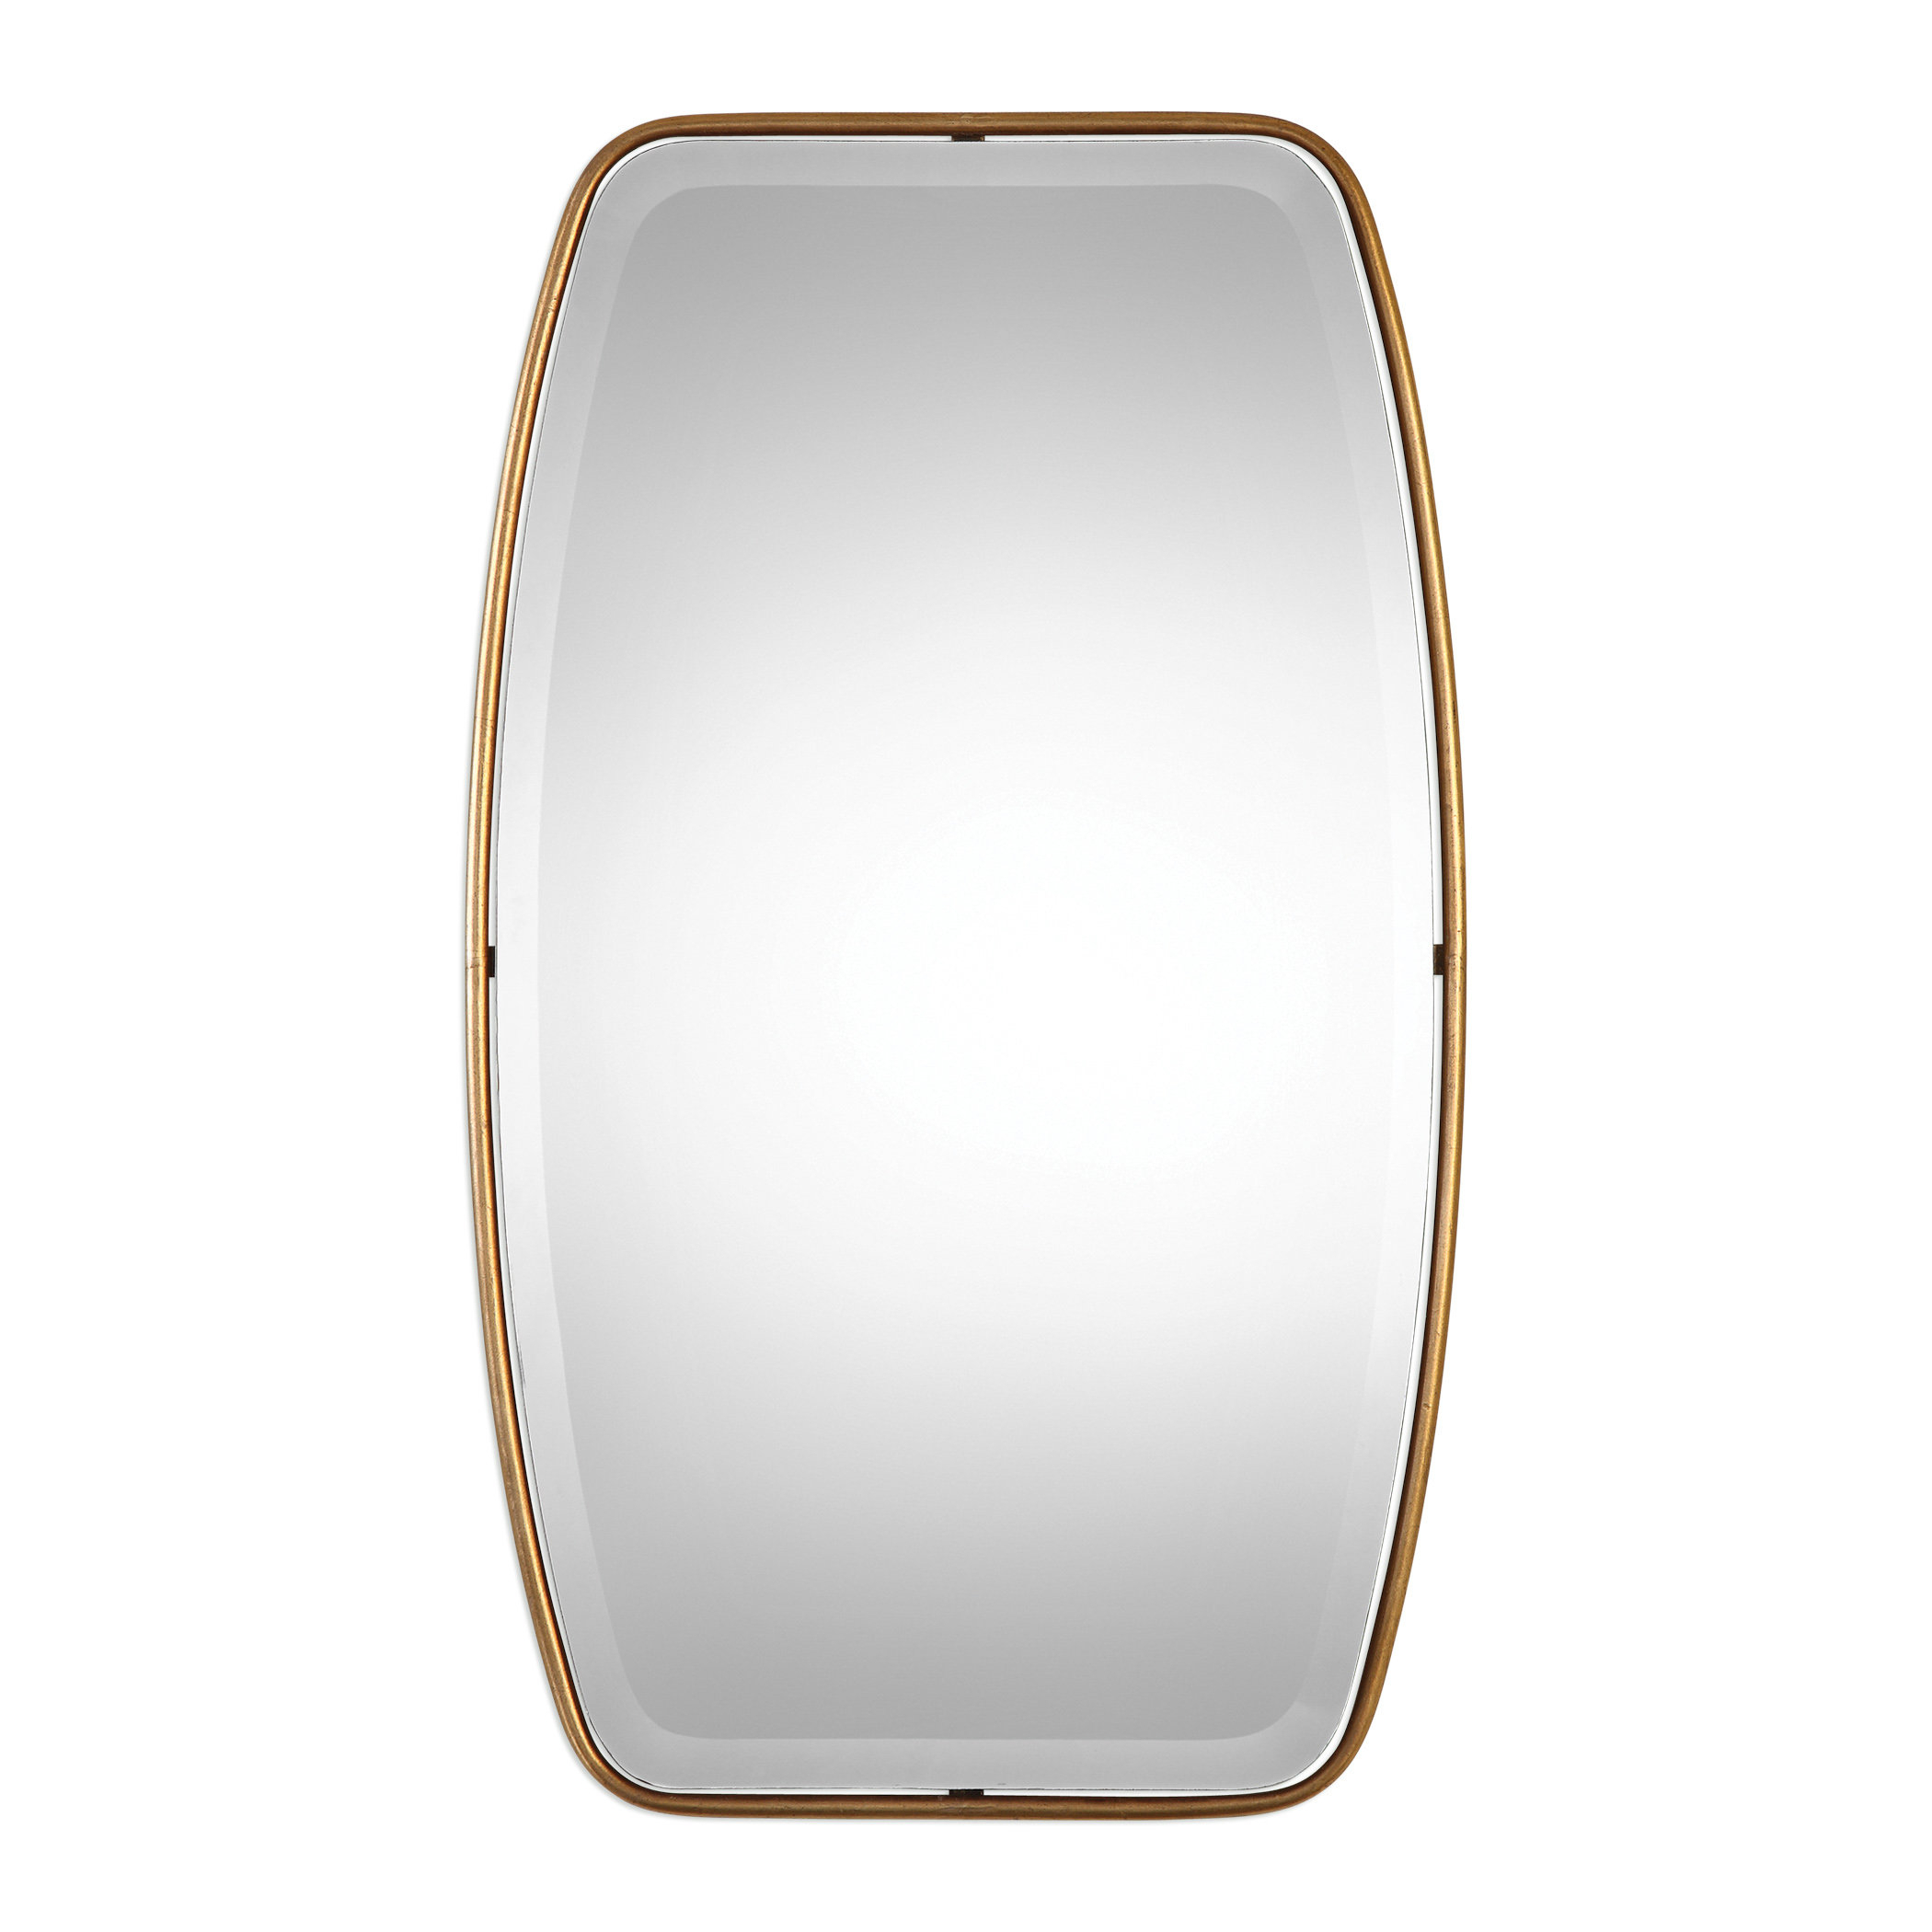 Lugo Rectangle Gold Metal Wall Mirror Inside Lugo Rectangle Accent Mirrors (Image 11 of 20)